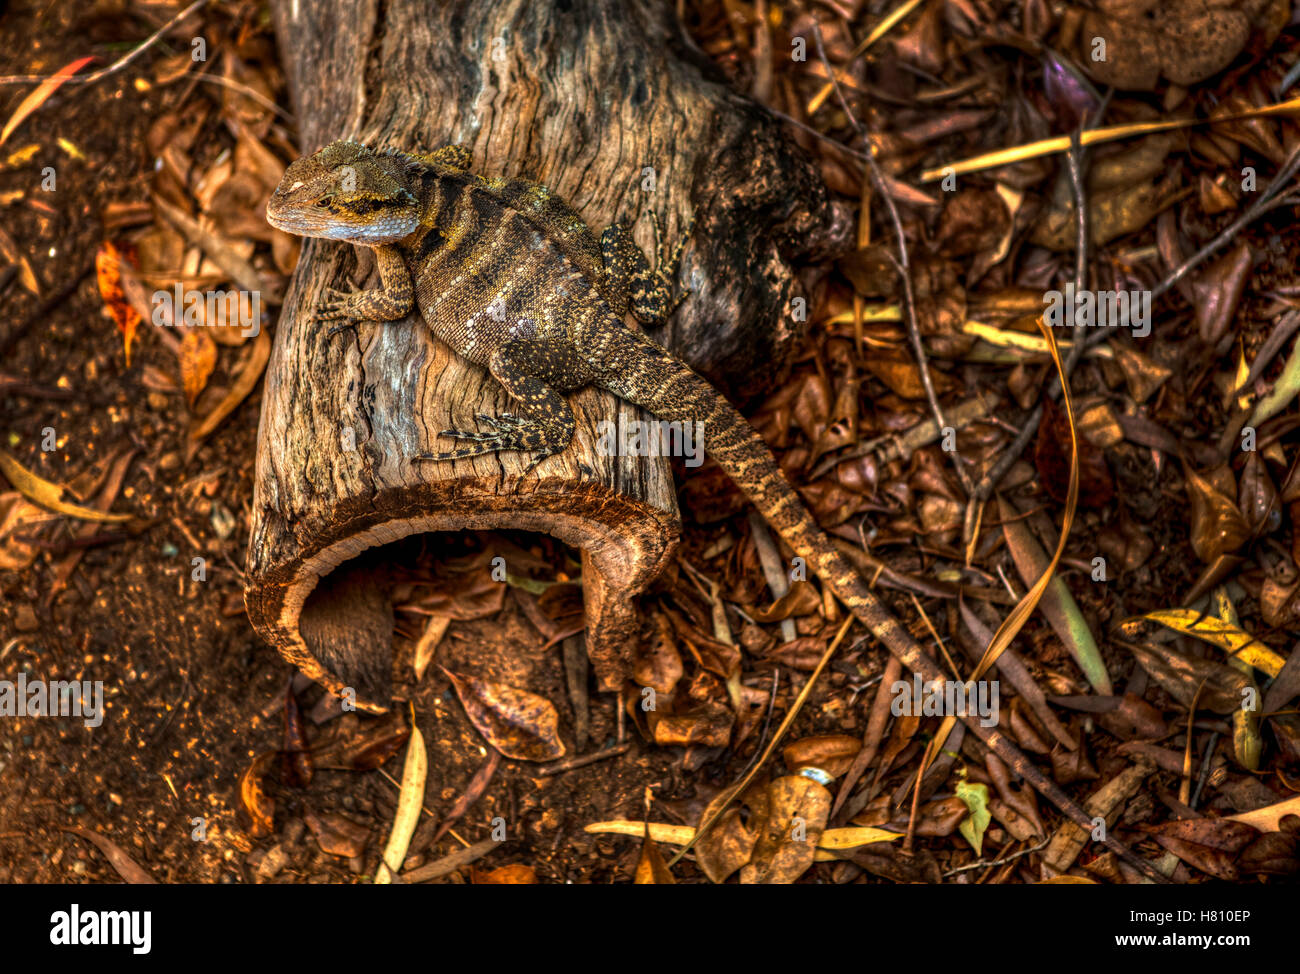 Reptile from Australia sitting on wooden log - Stock Image